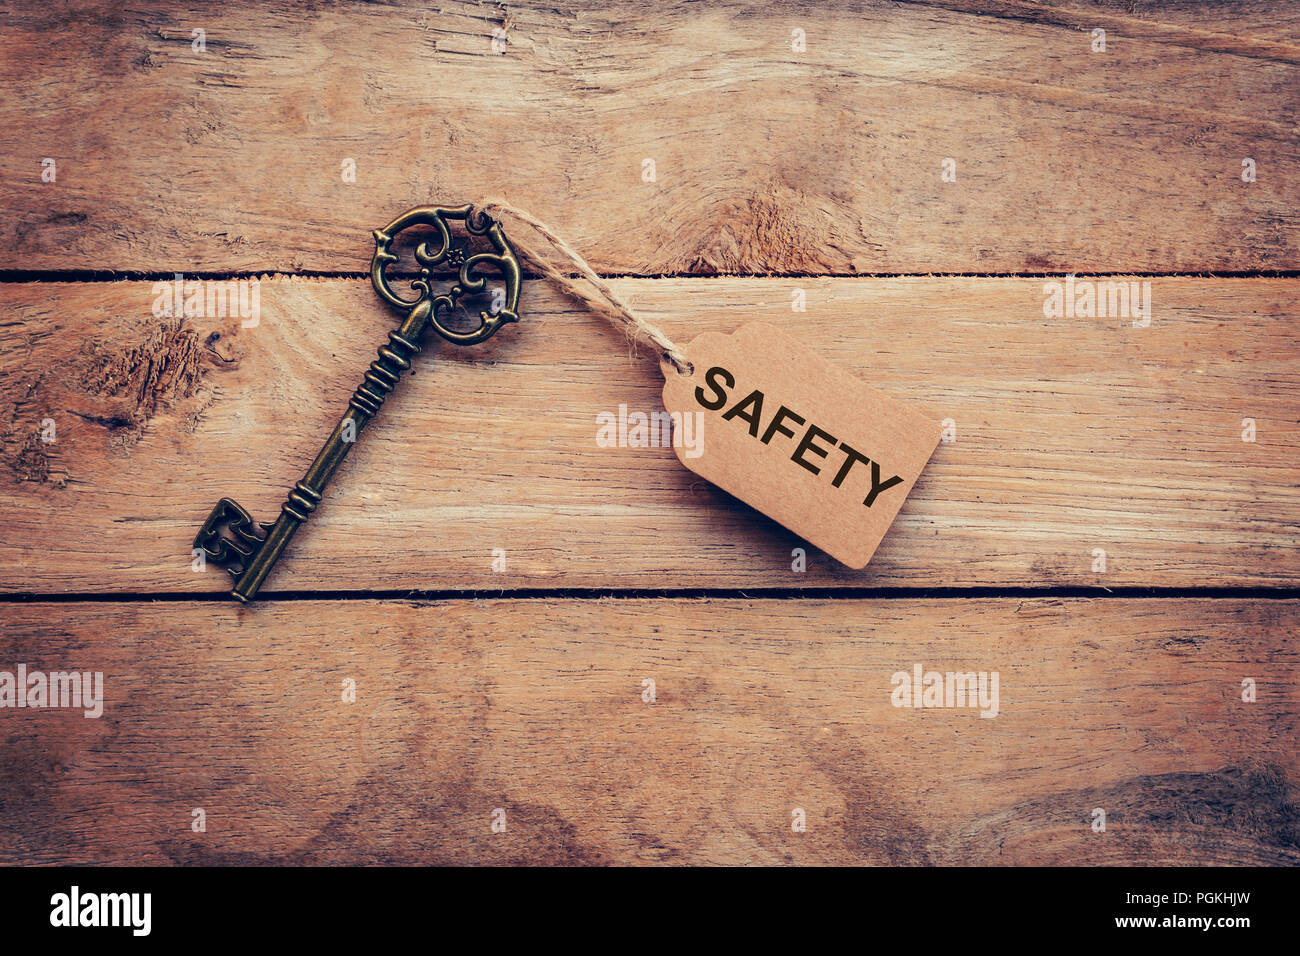 Old key and tag lable SAFETY for on wooden for business concept. - Stock Image